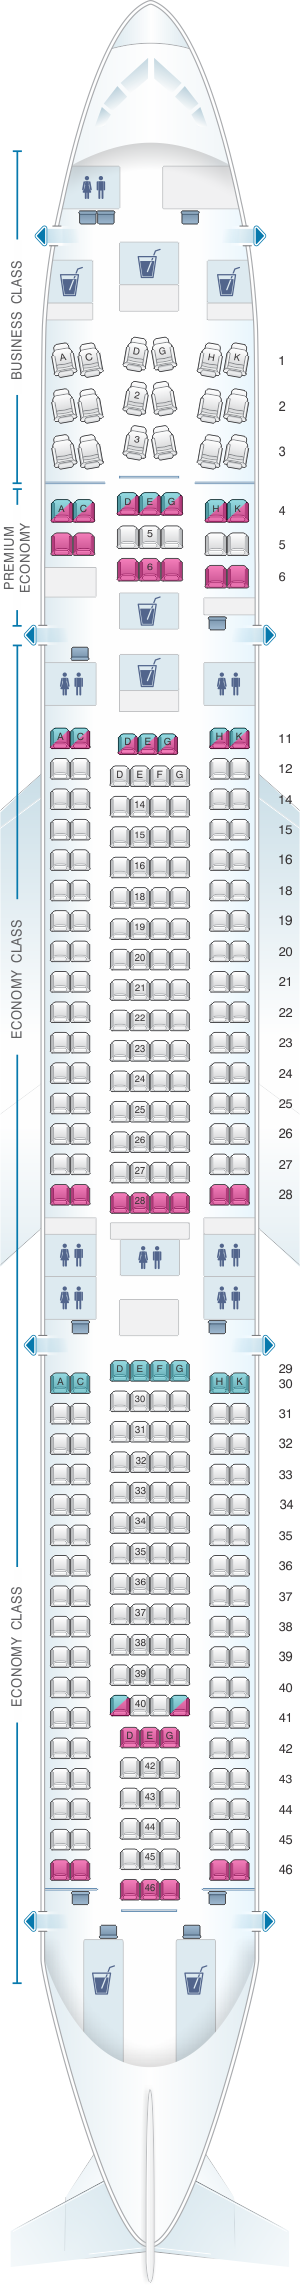 Seat map for Lufthansa Airbus A340 300 298pax